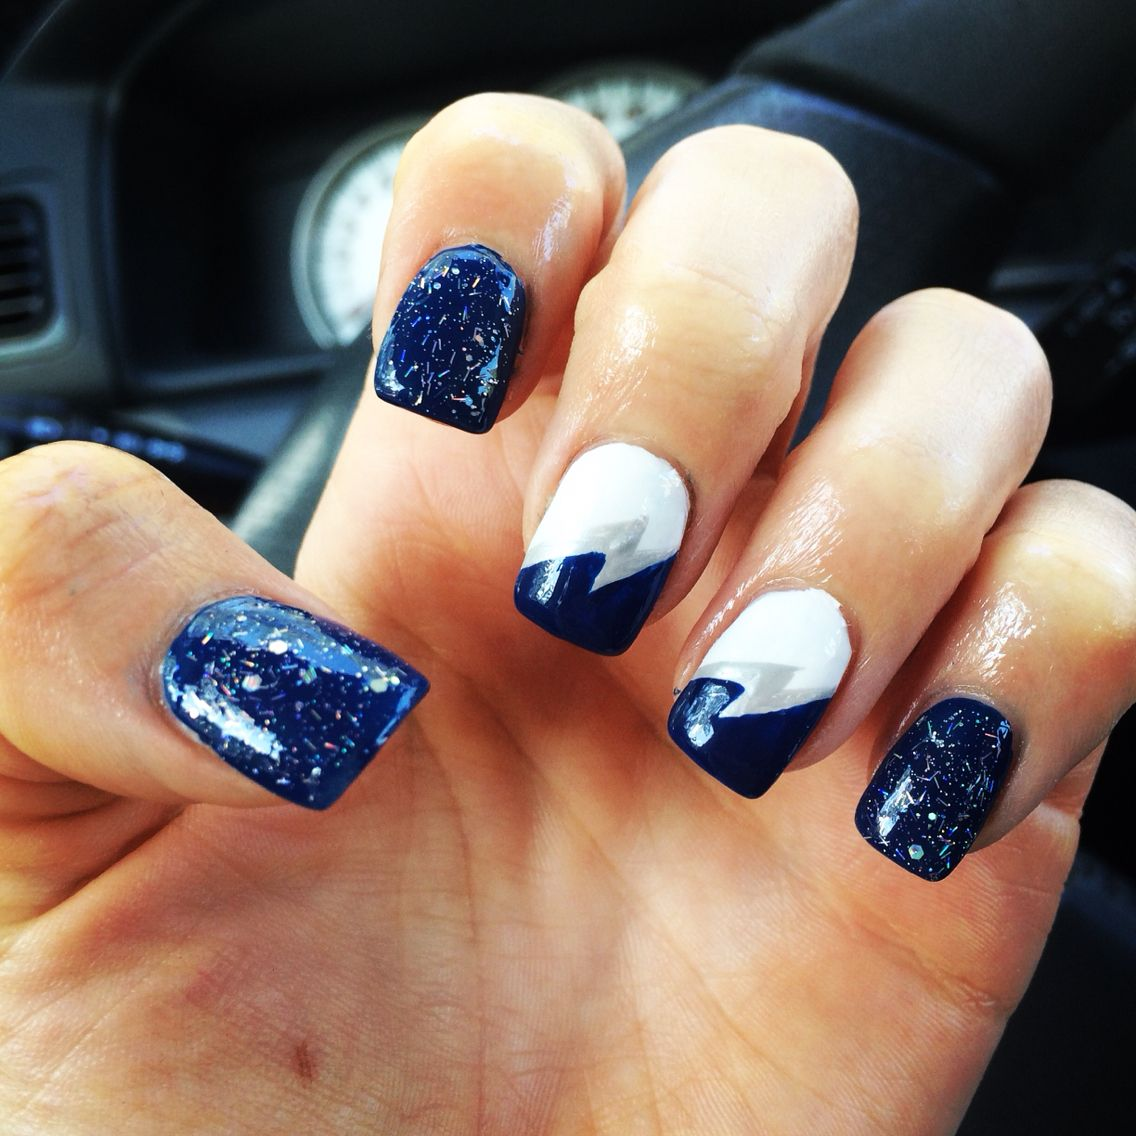 Tampa Bay Lightning Nail Art Go Bolts